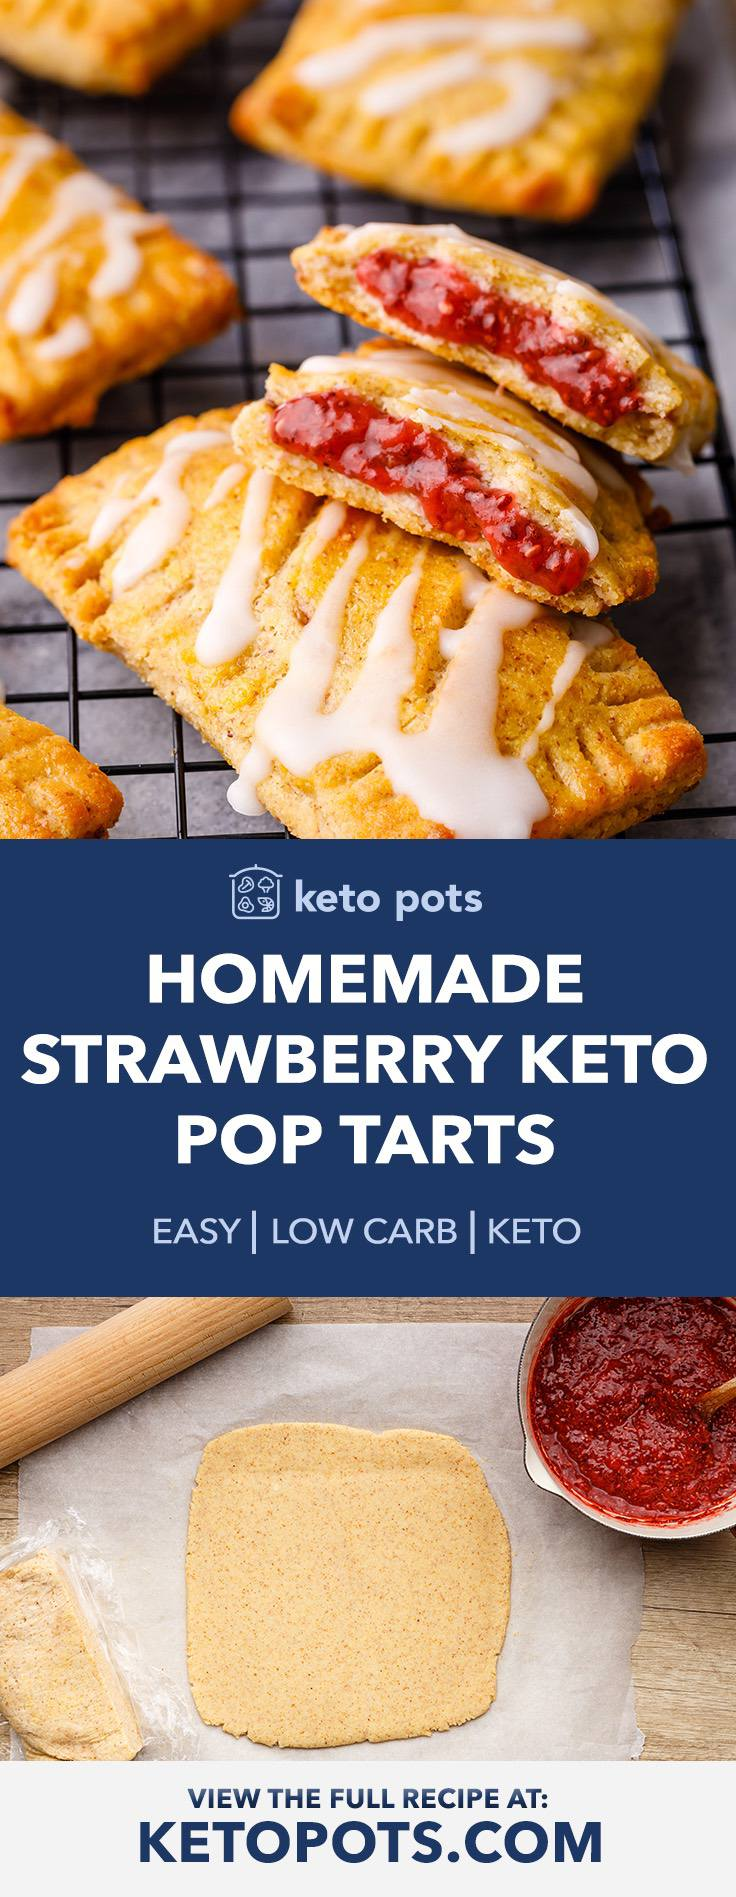 Homemade (And Low Carb) Keto Strawberry Pop Tarts